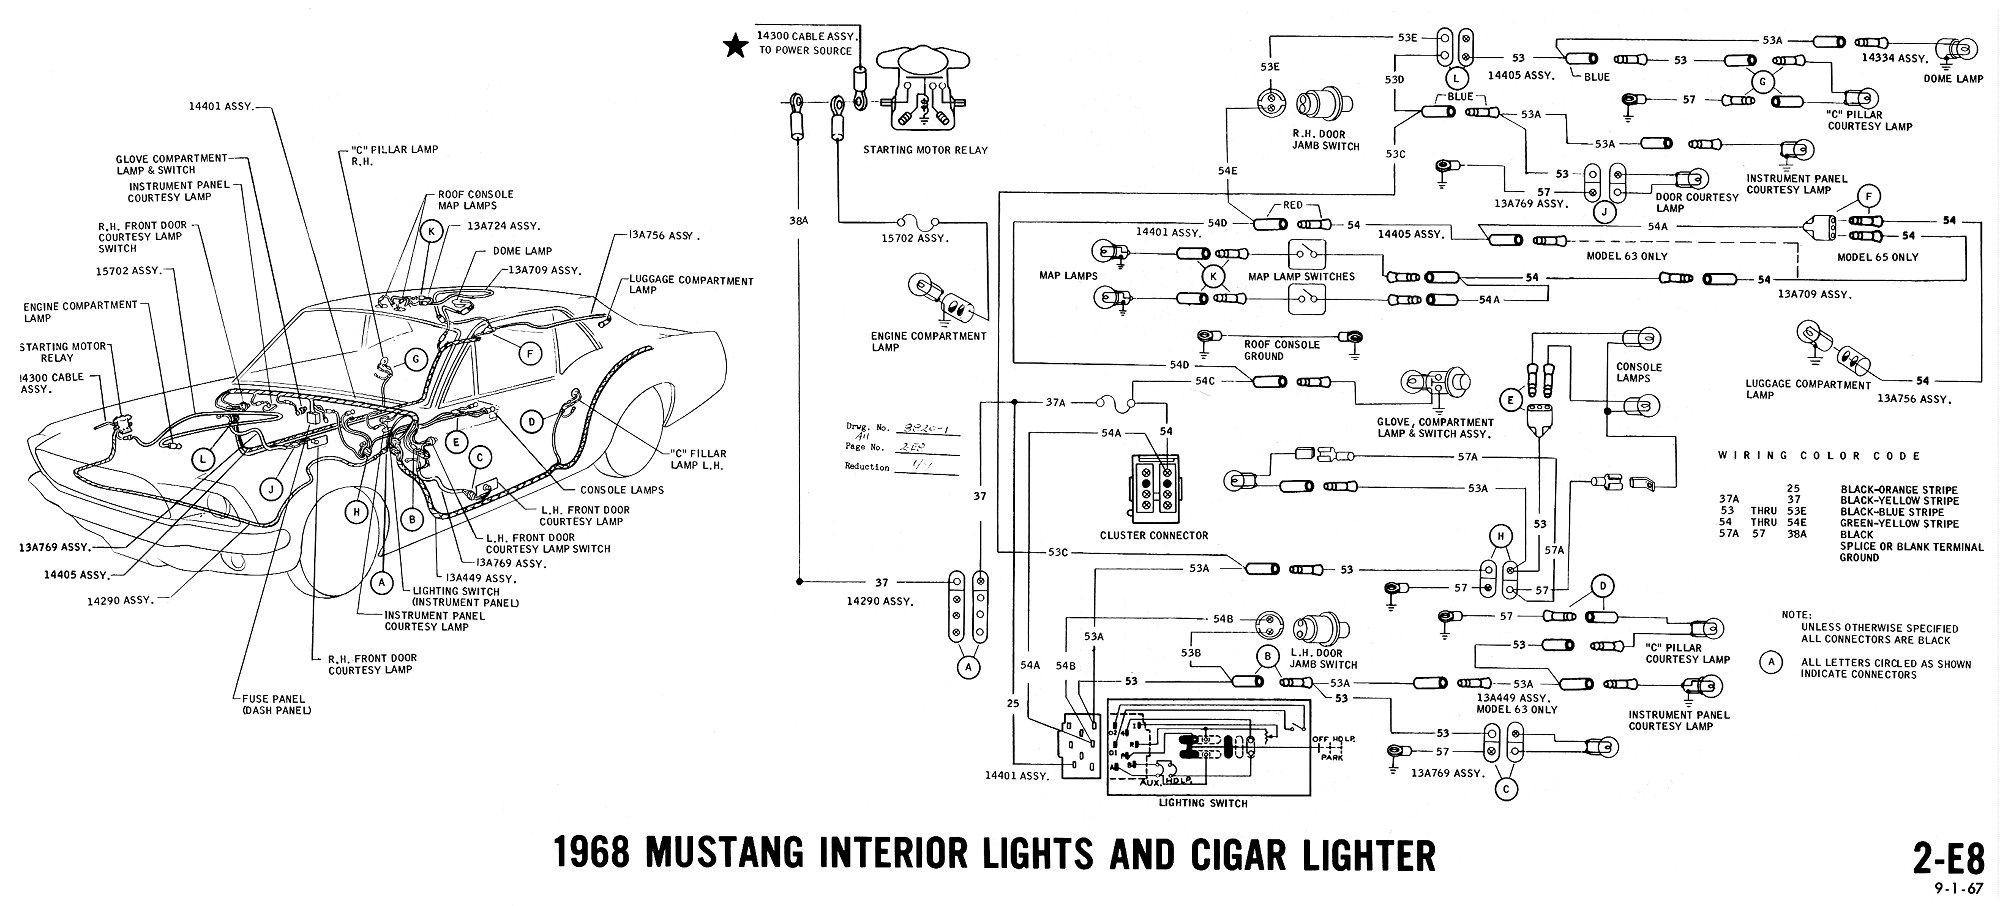 1969 mustang turn signal wiring diagram wiring diagram pictures ford mustang fuse box diagram 68 mustang turn signal wiring diagram wiring diagram pictures ford ignition switch diagram 1968 mustang wiring